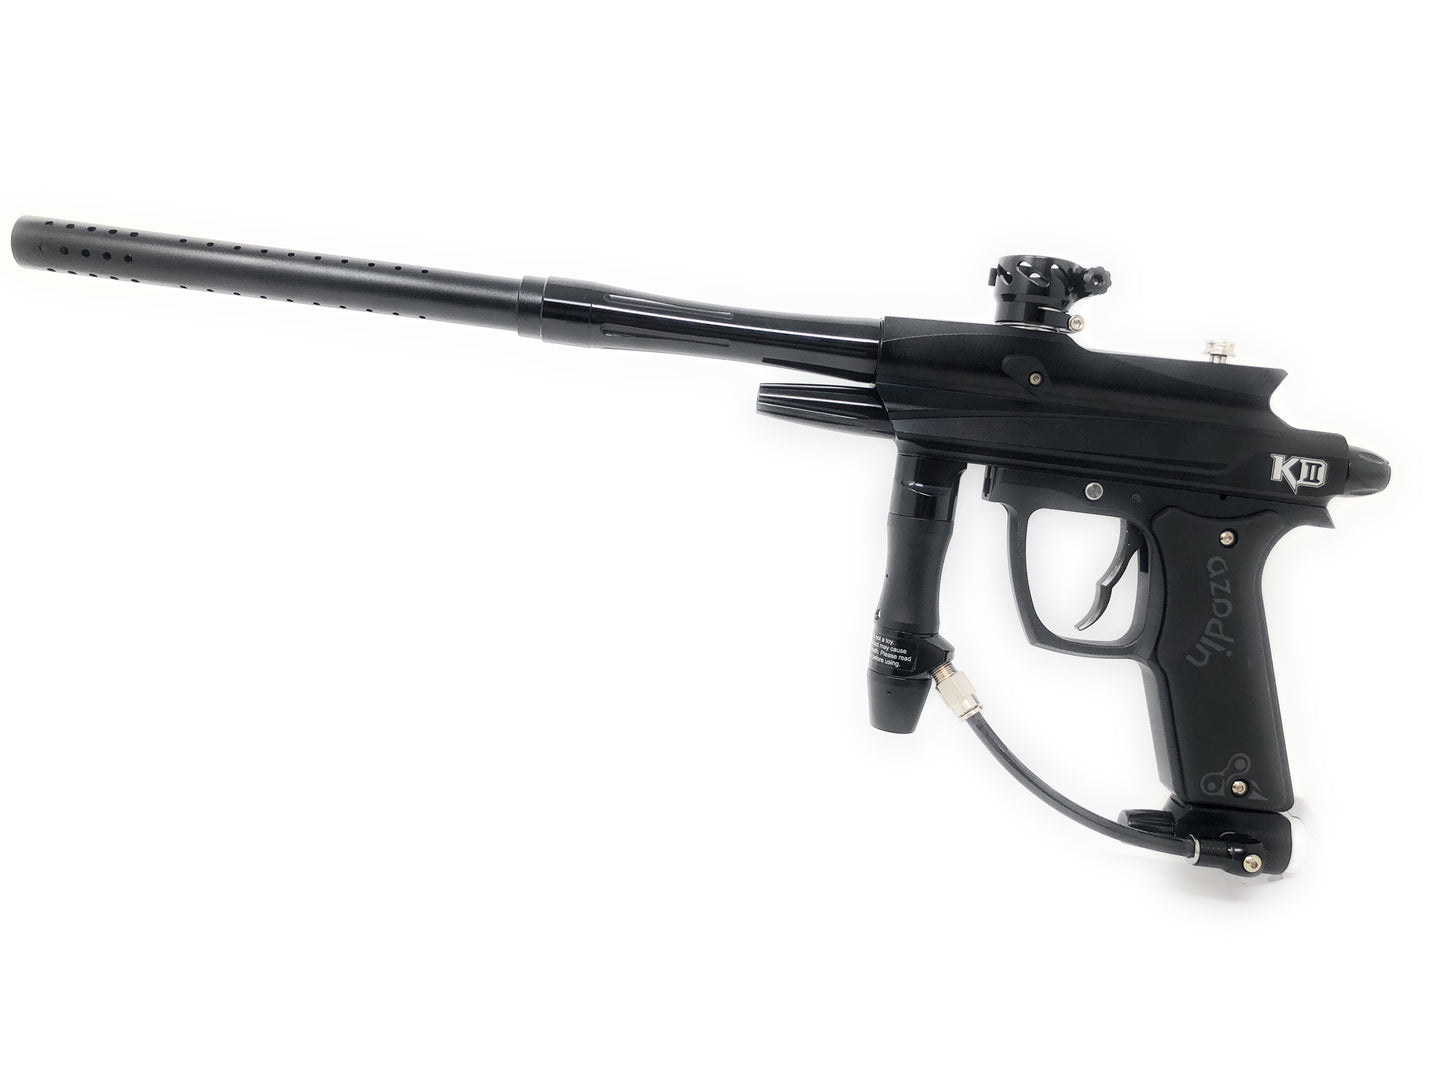 Photos of Azodin KD-II Paintball Marker - Black. Photo taken by drpaintball.com